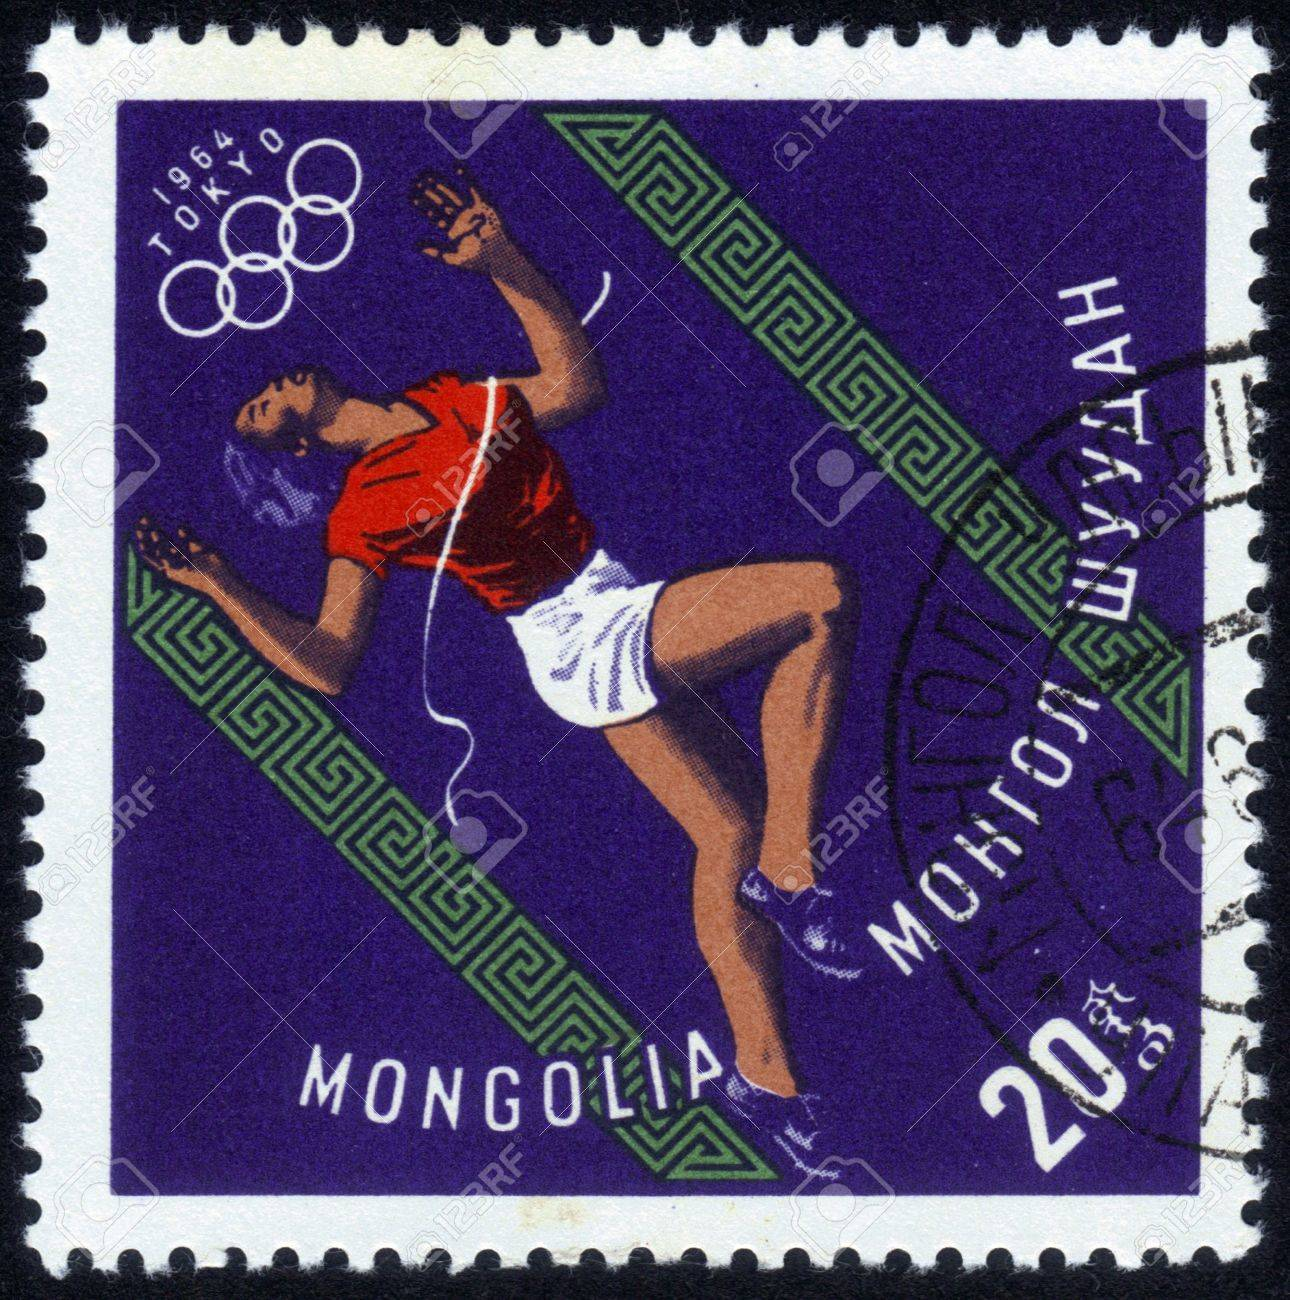 Mongolia - CIRCA 1964: a stamp printed by Mongolia shows an athlete runner, devoted to summer Olympic Games in Tokyo in 1964, series, circa 1964 Stock Photo - 14147236